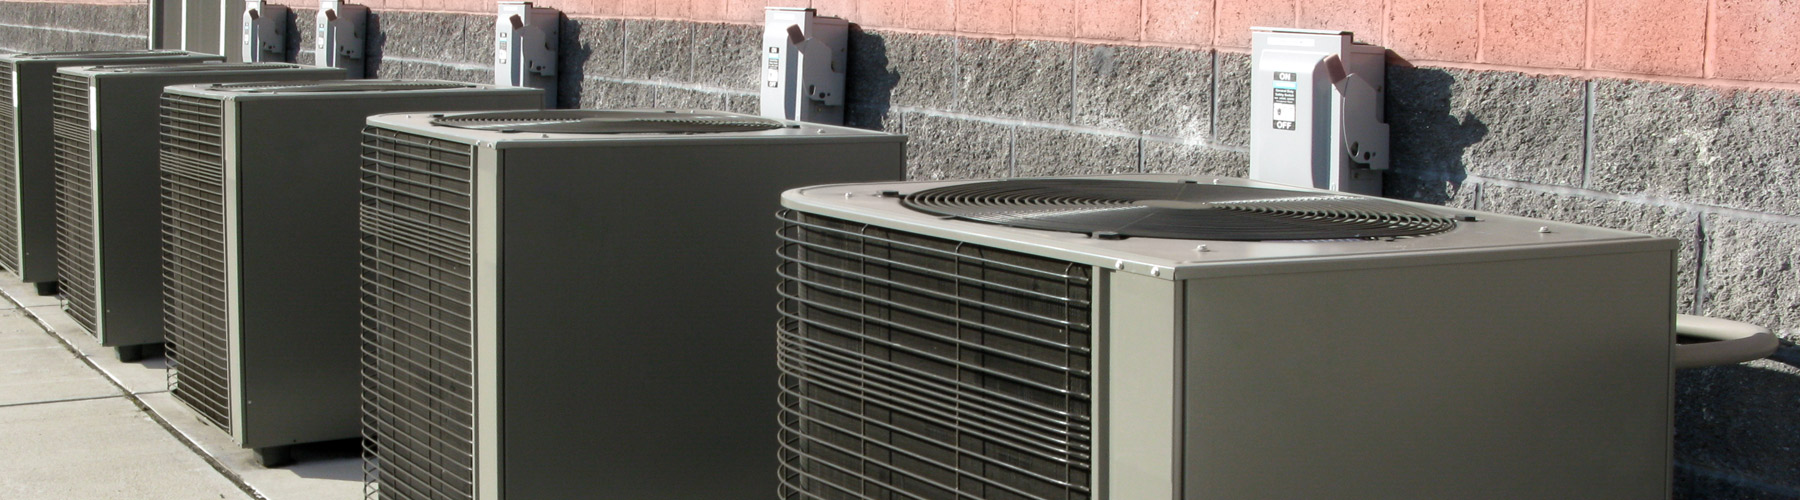 Myrtle Beach HVAC Services